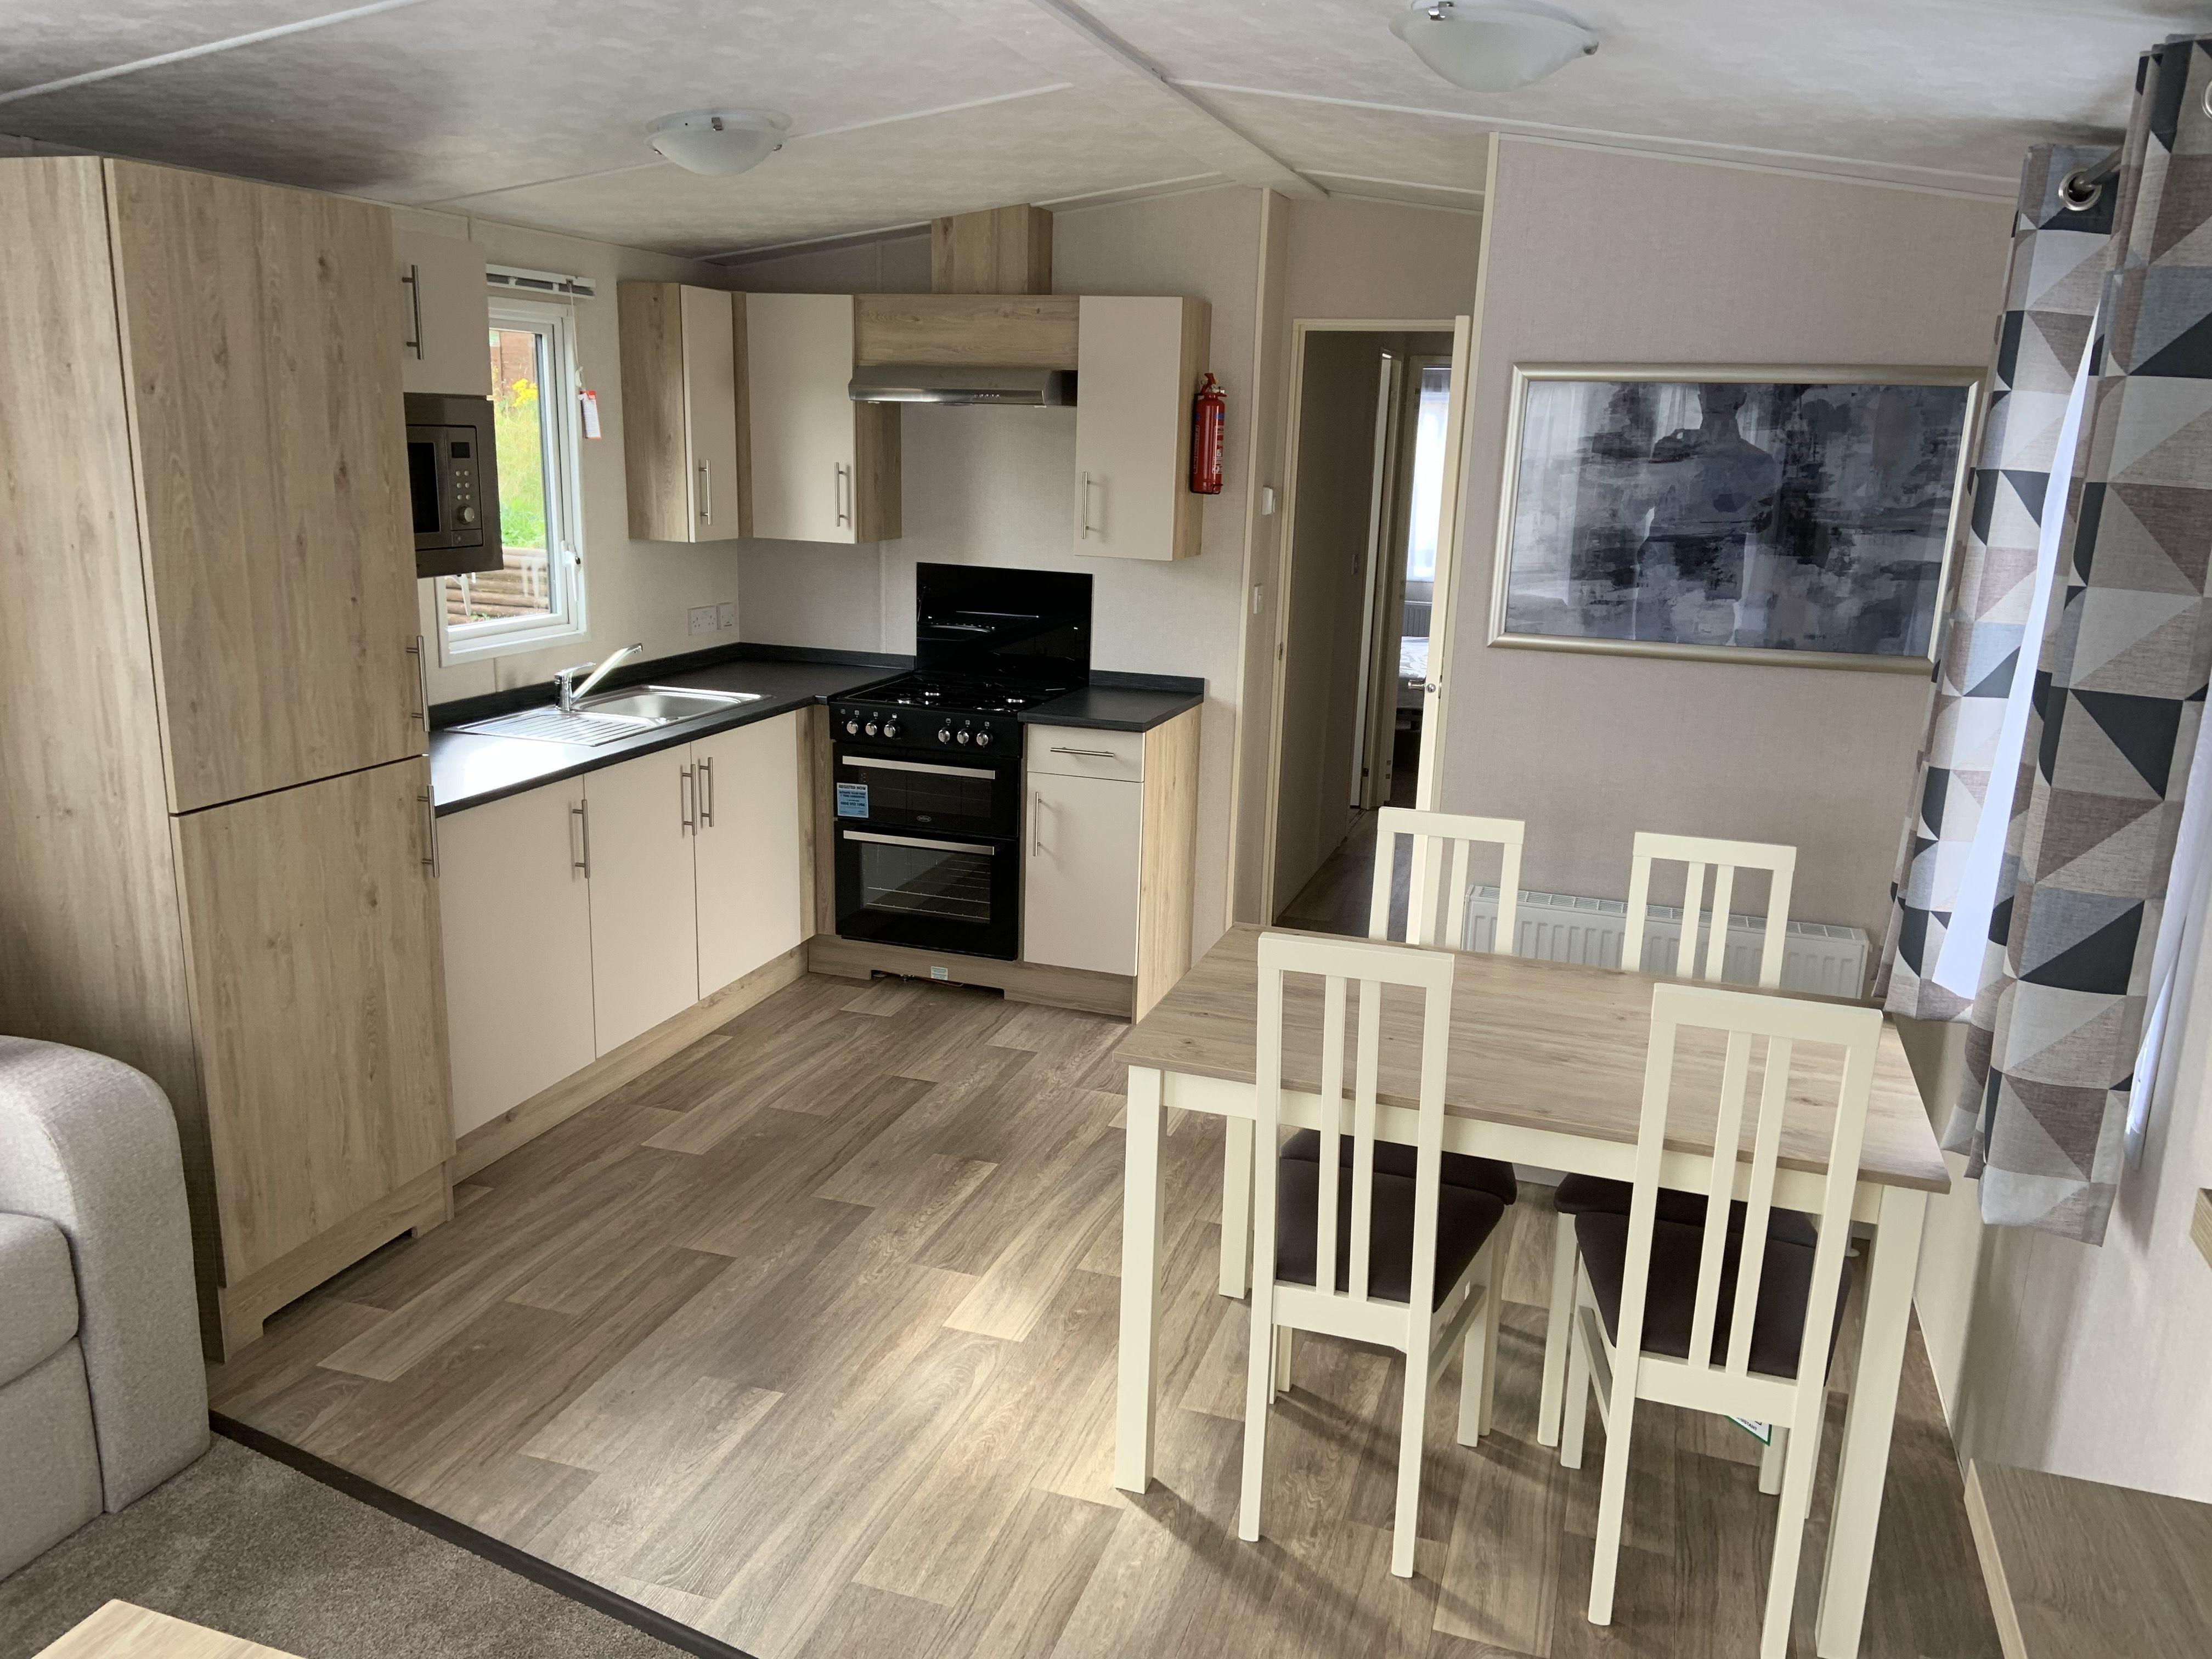 Retreat Caravans in 2020 Home, Home ownership, Holiday home